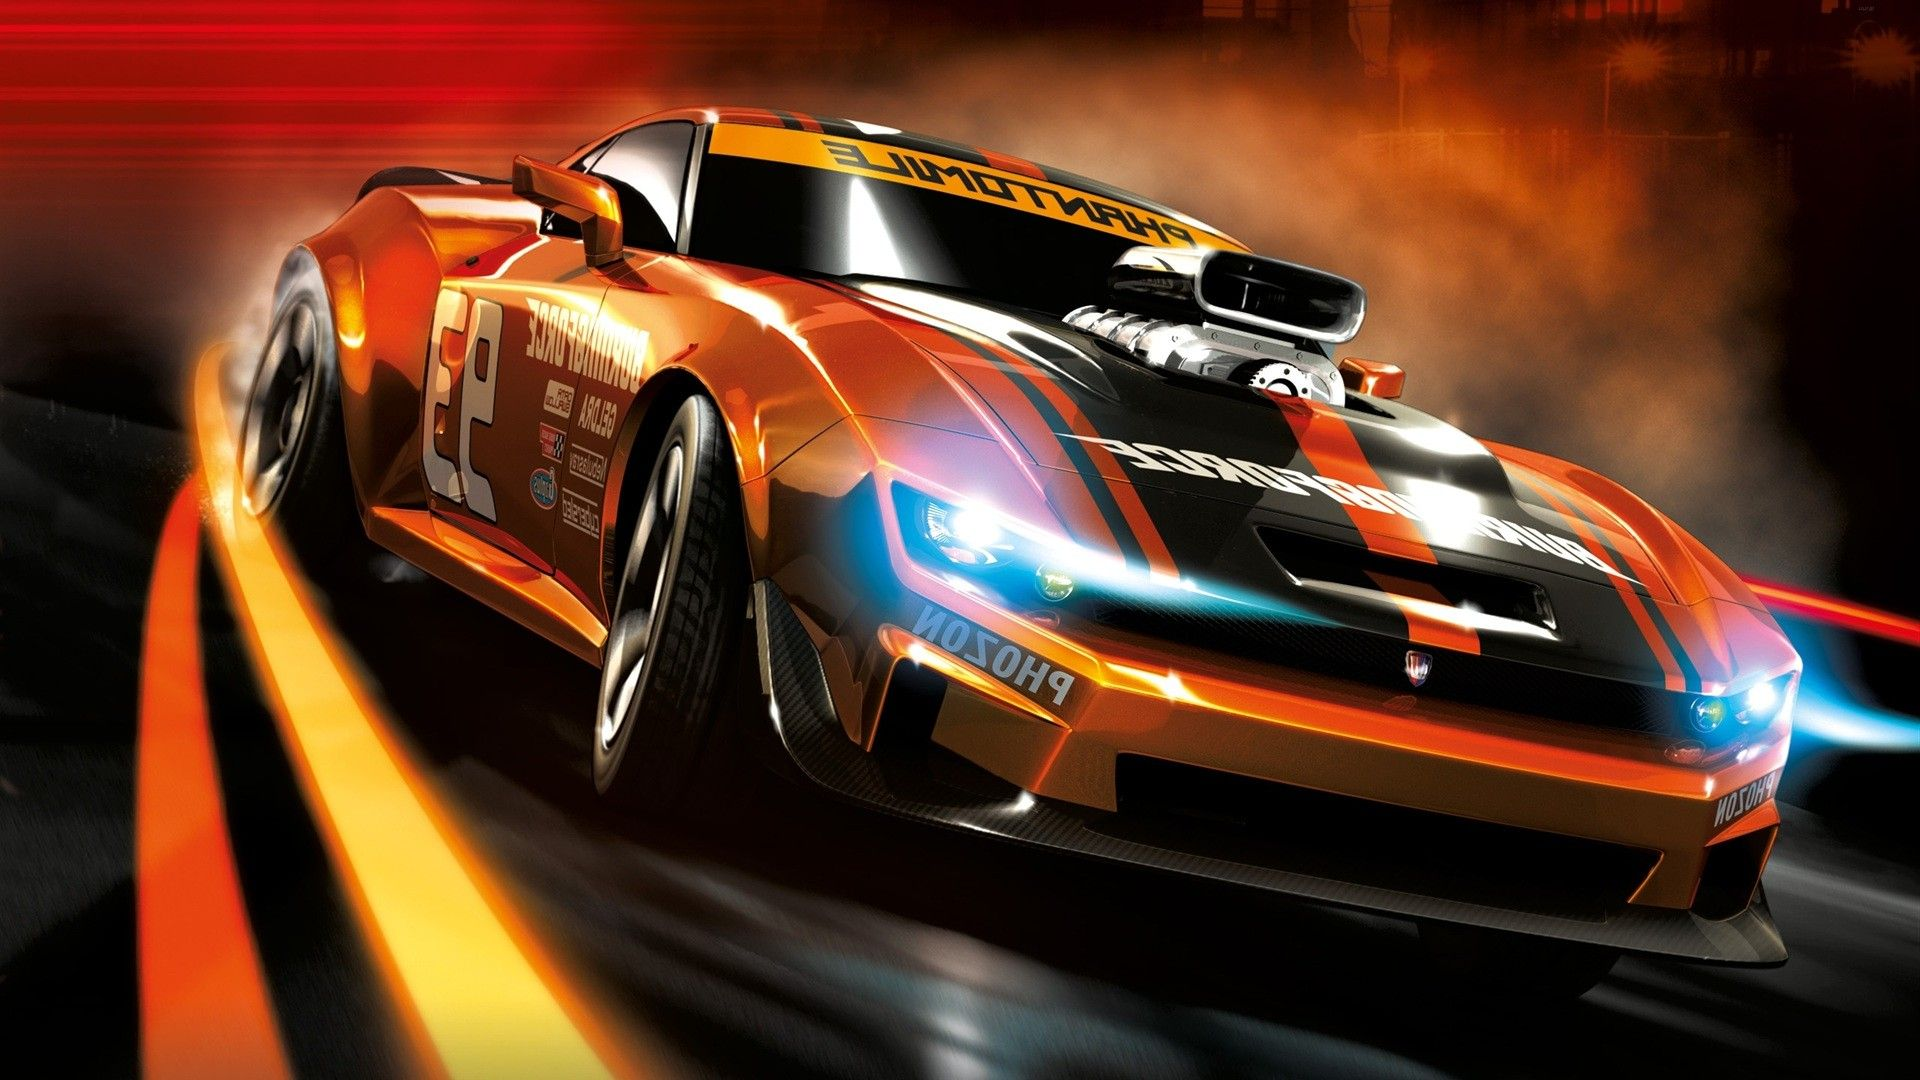 Cool Car Background Wallpapers Wallpapers Backgrounds Images 1920x1080